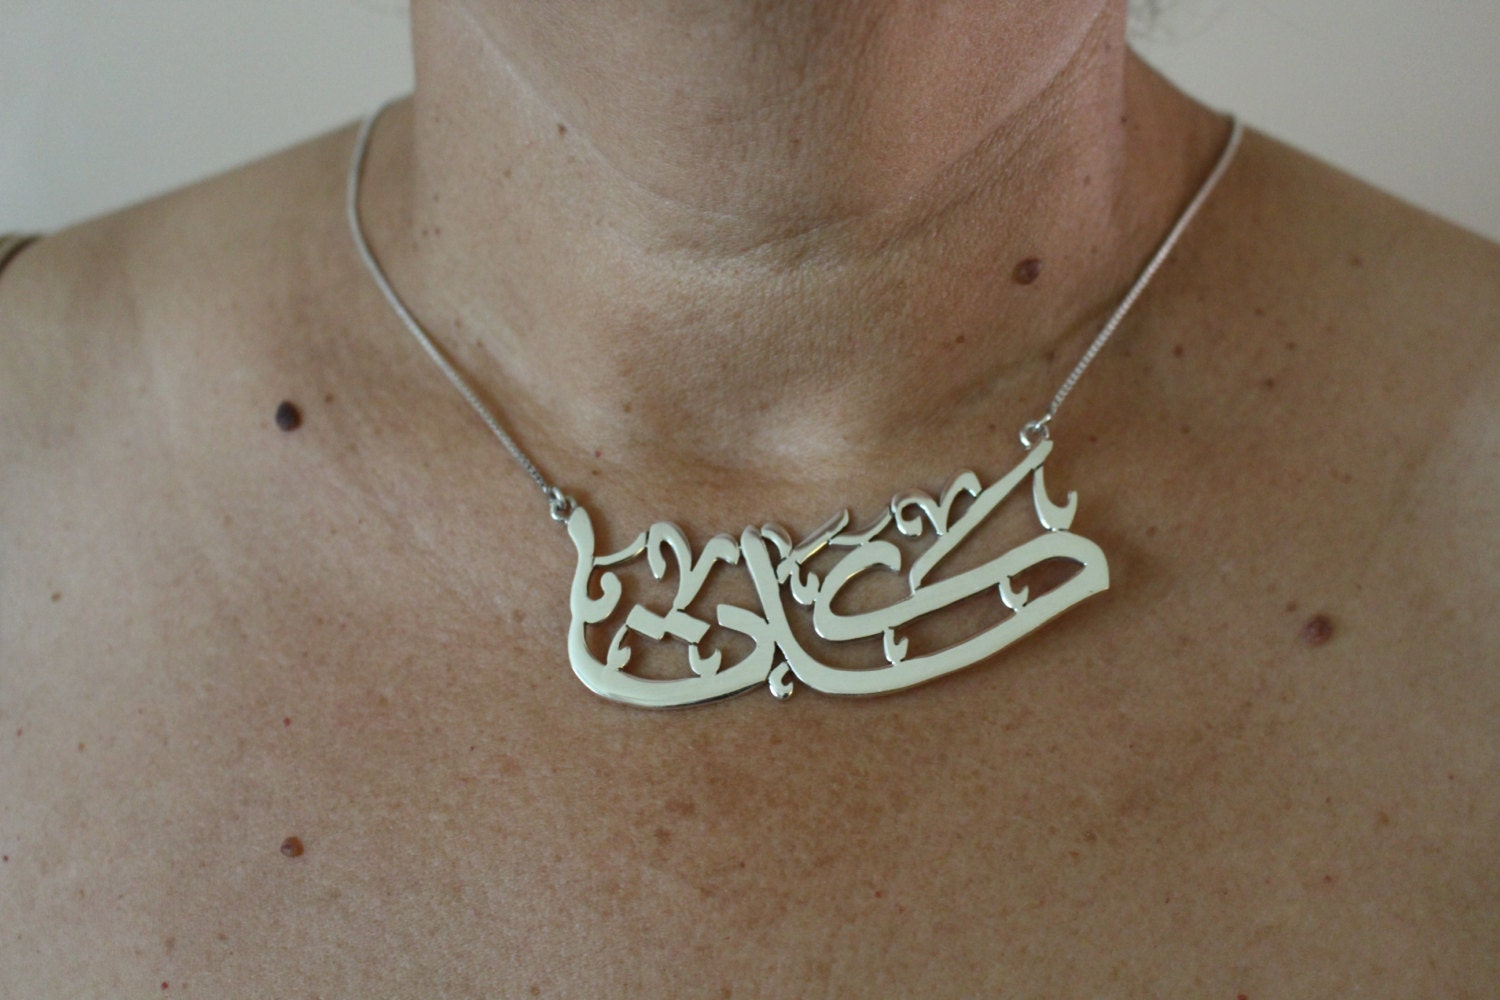 jewelry pronunciation large size arabic punctuated name necklace proper 6978